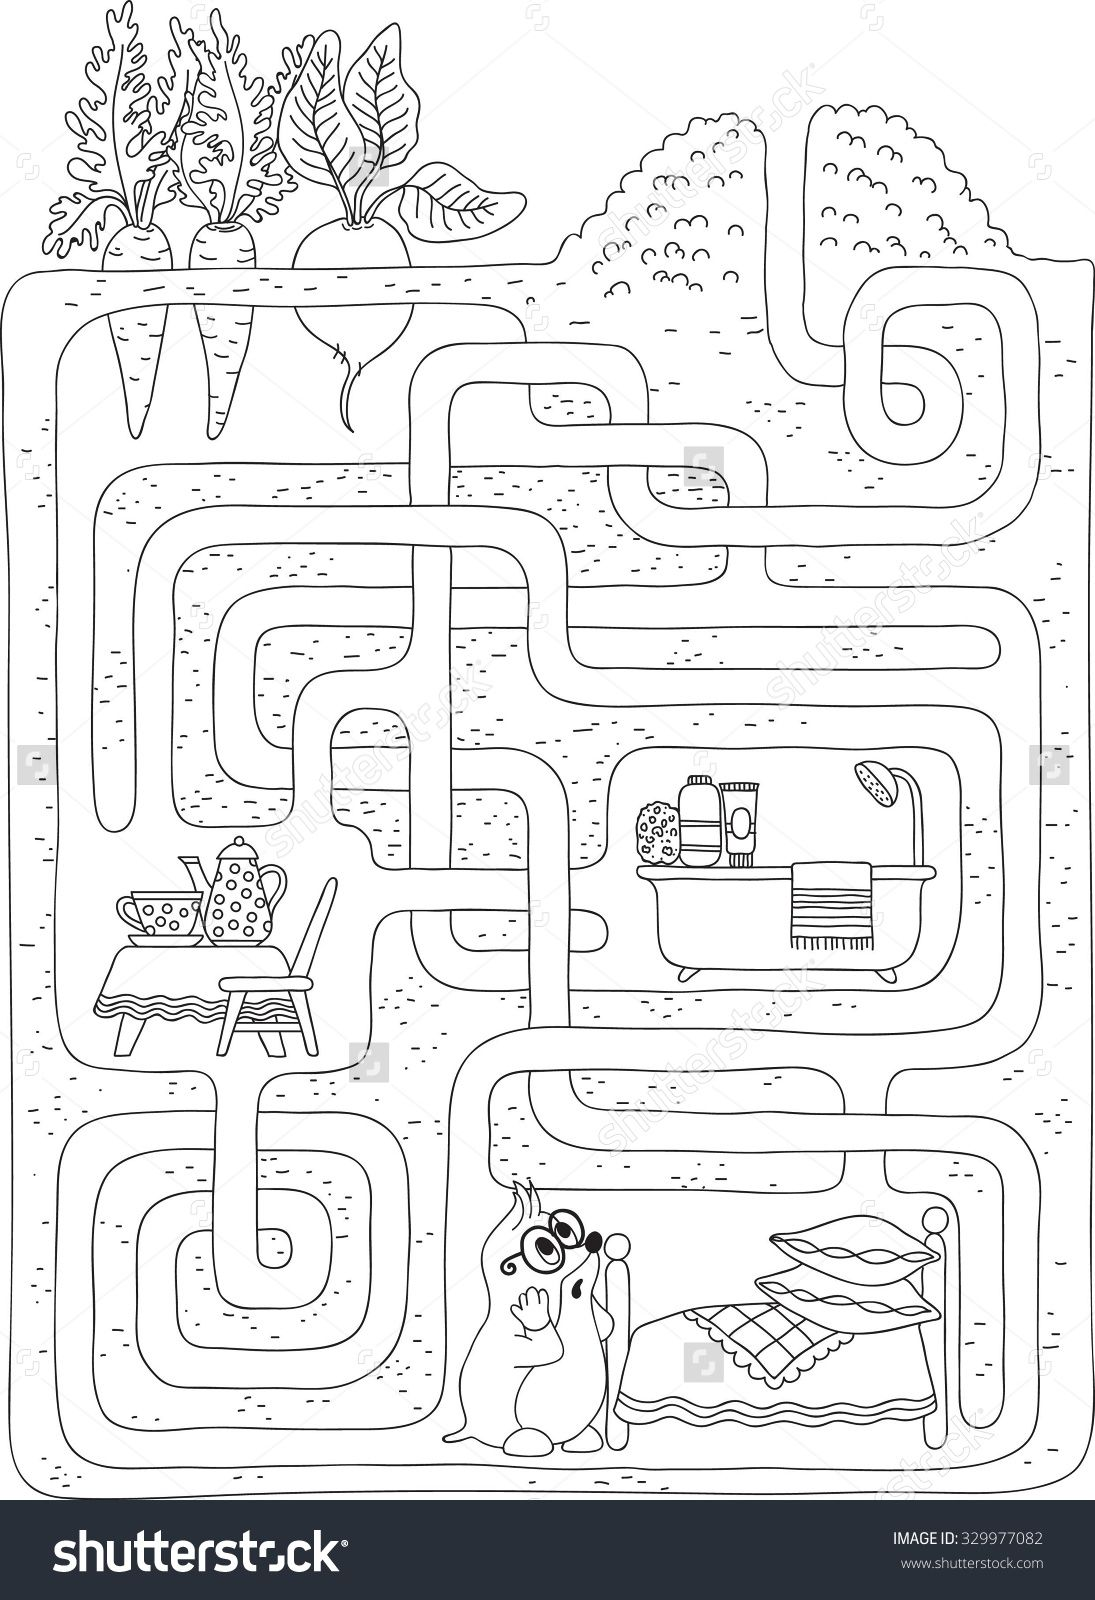 Labyrinth Maze Level 2